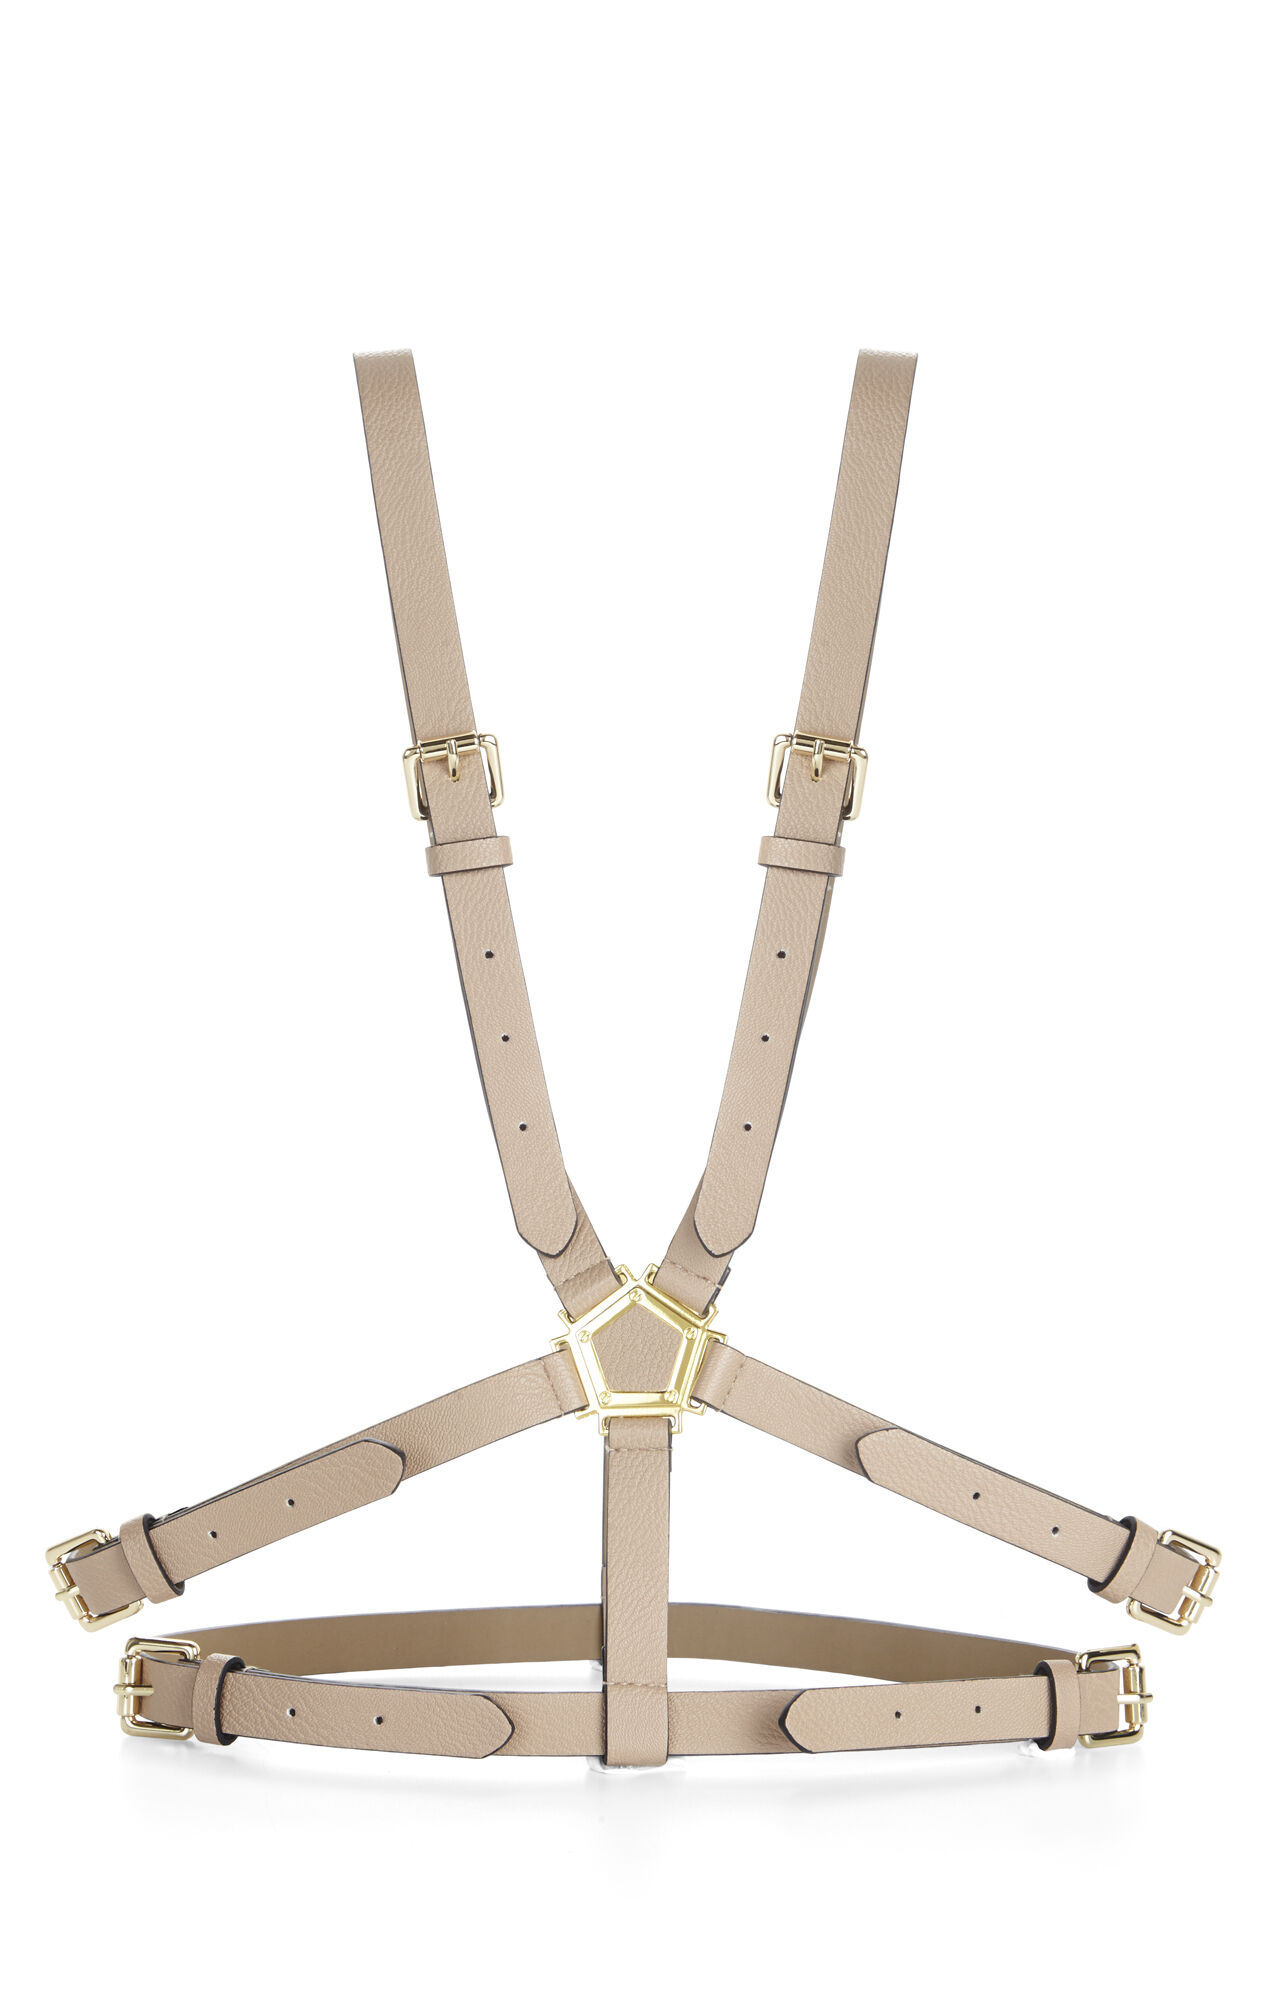 Pentagon Hardware-Harness Waist Belt